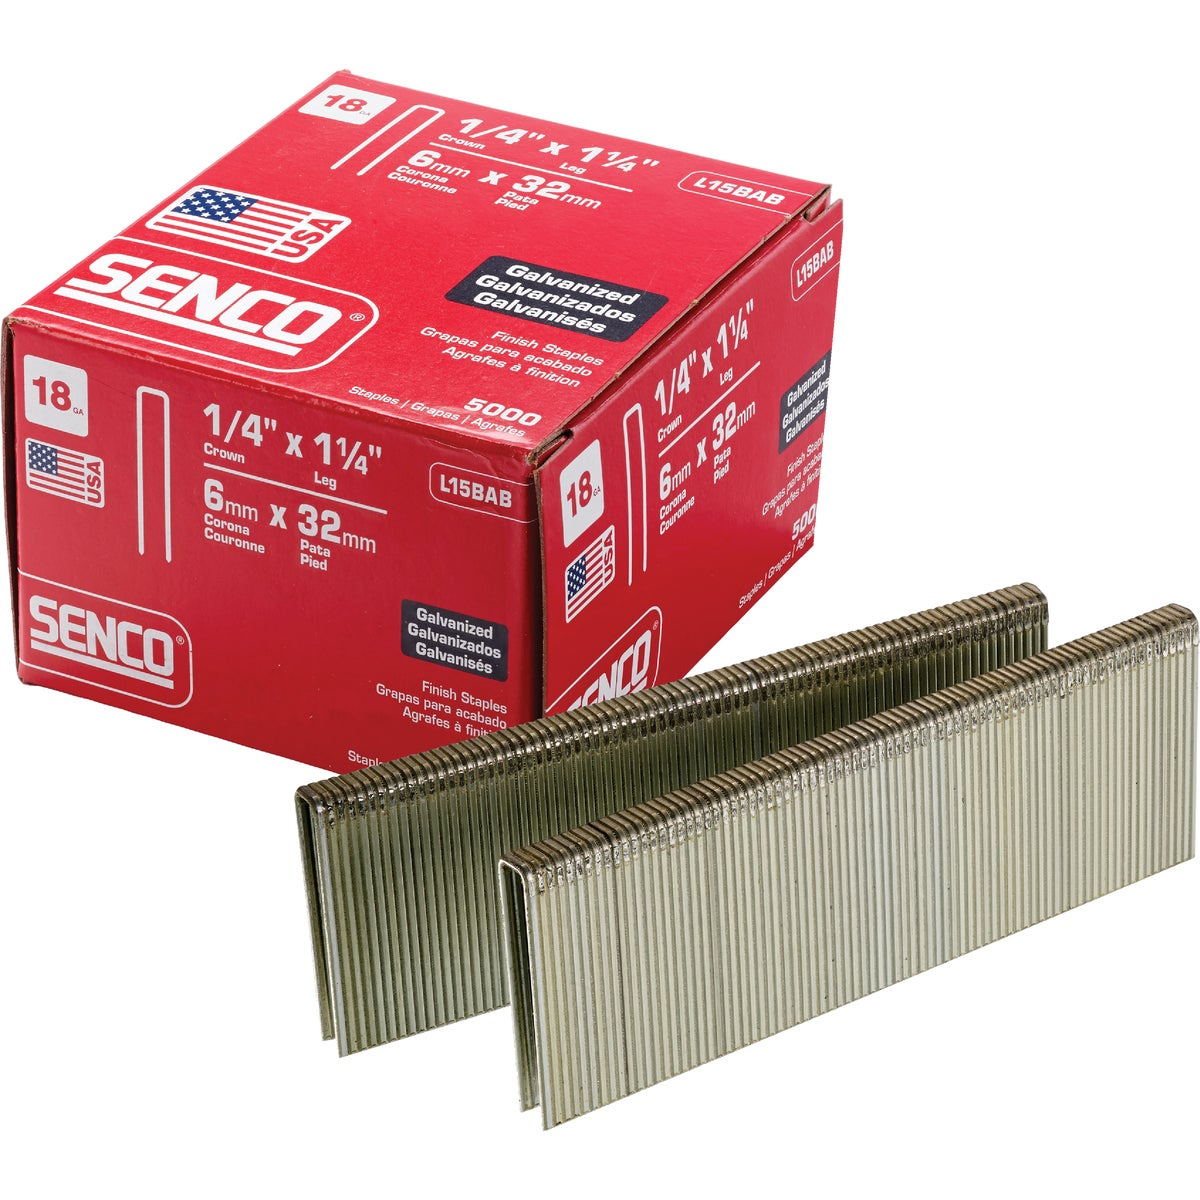 1-1/4X1/4 STAPLE - L15BAB by Senco Brands